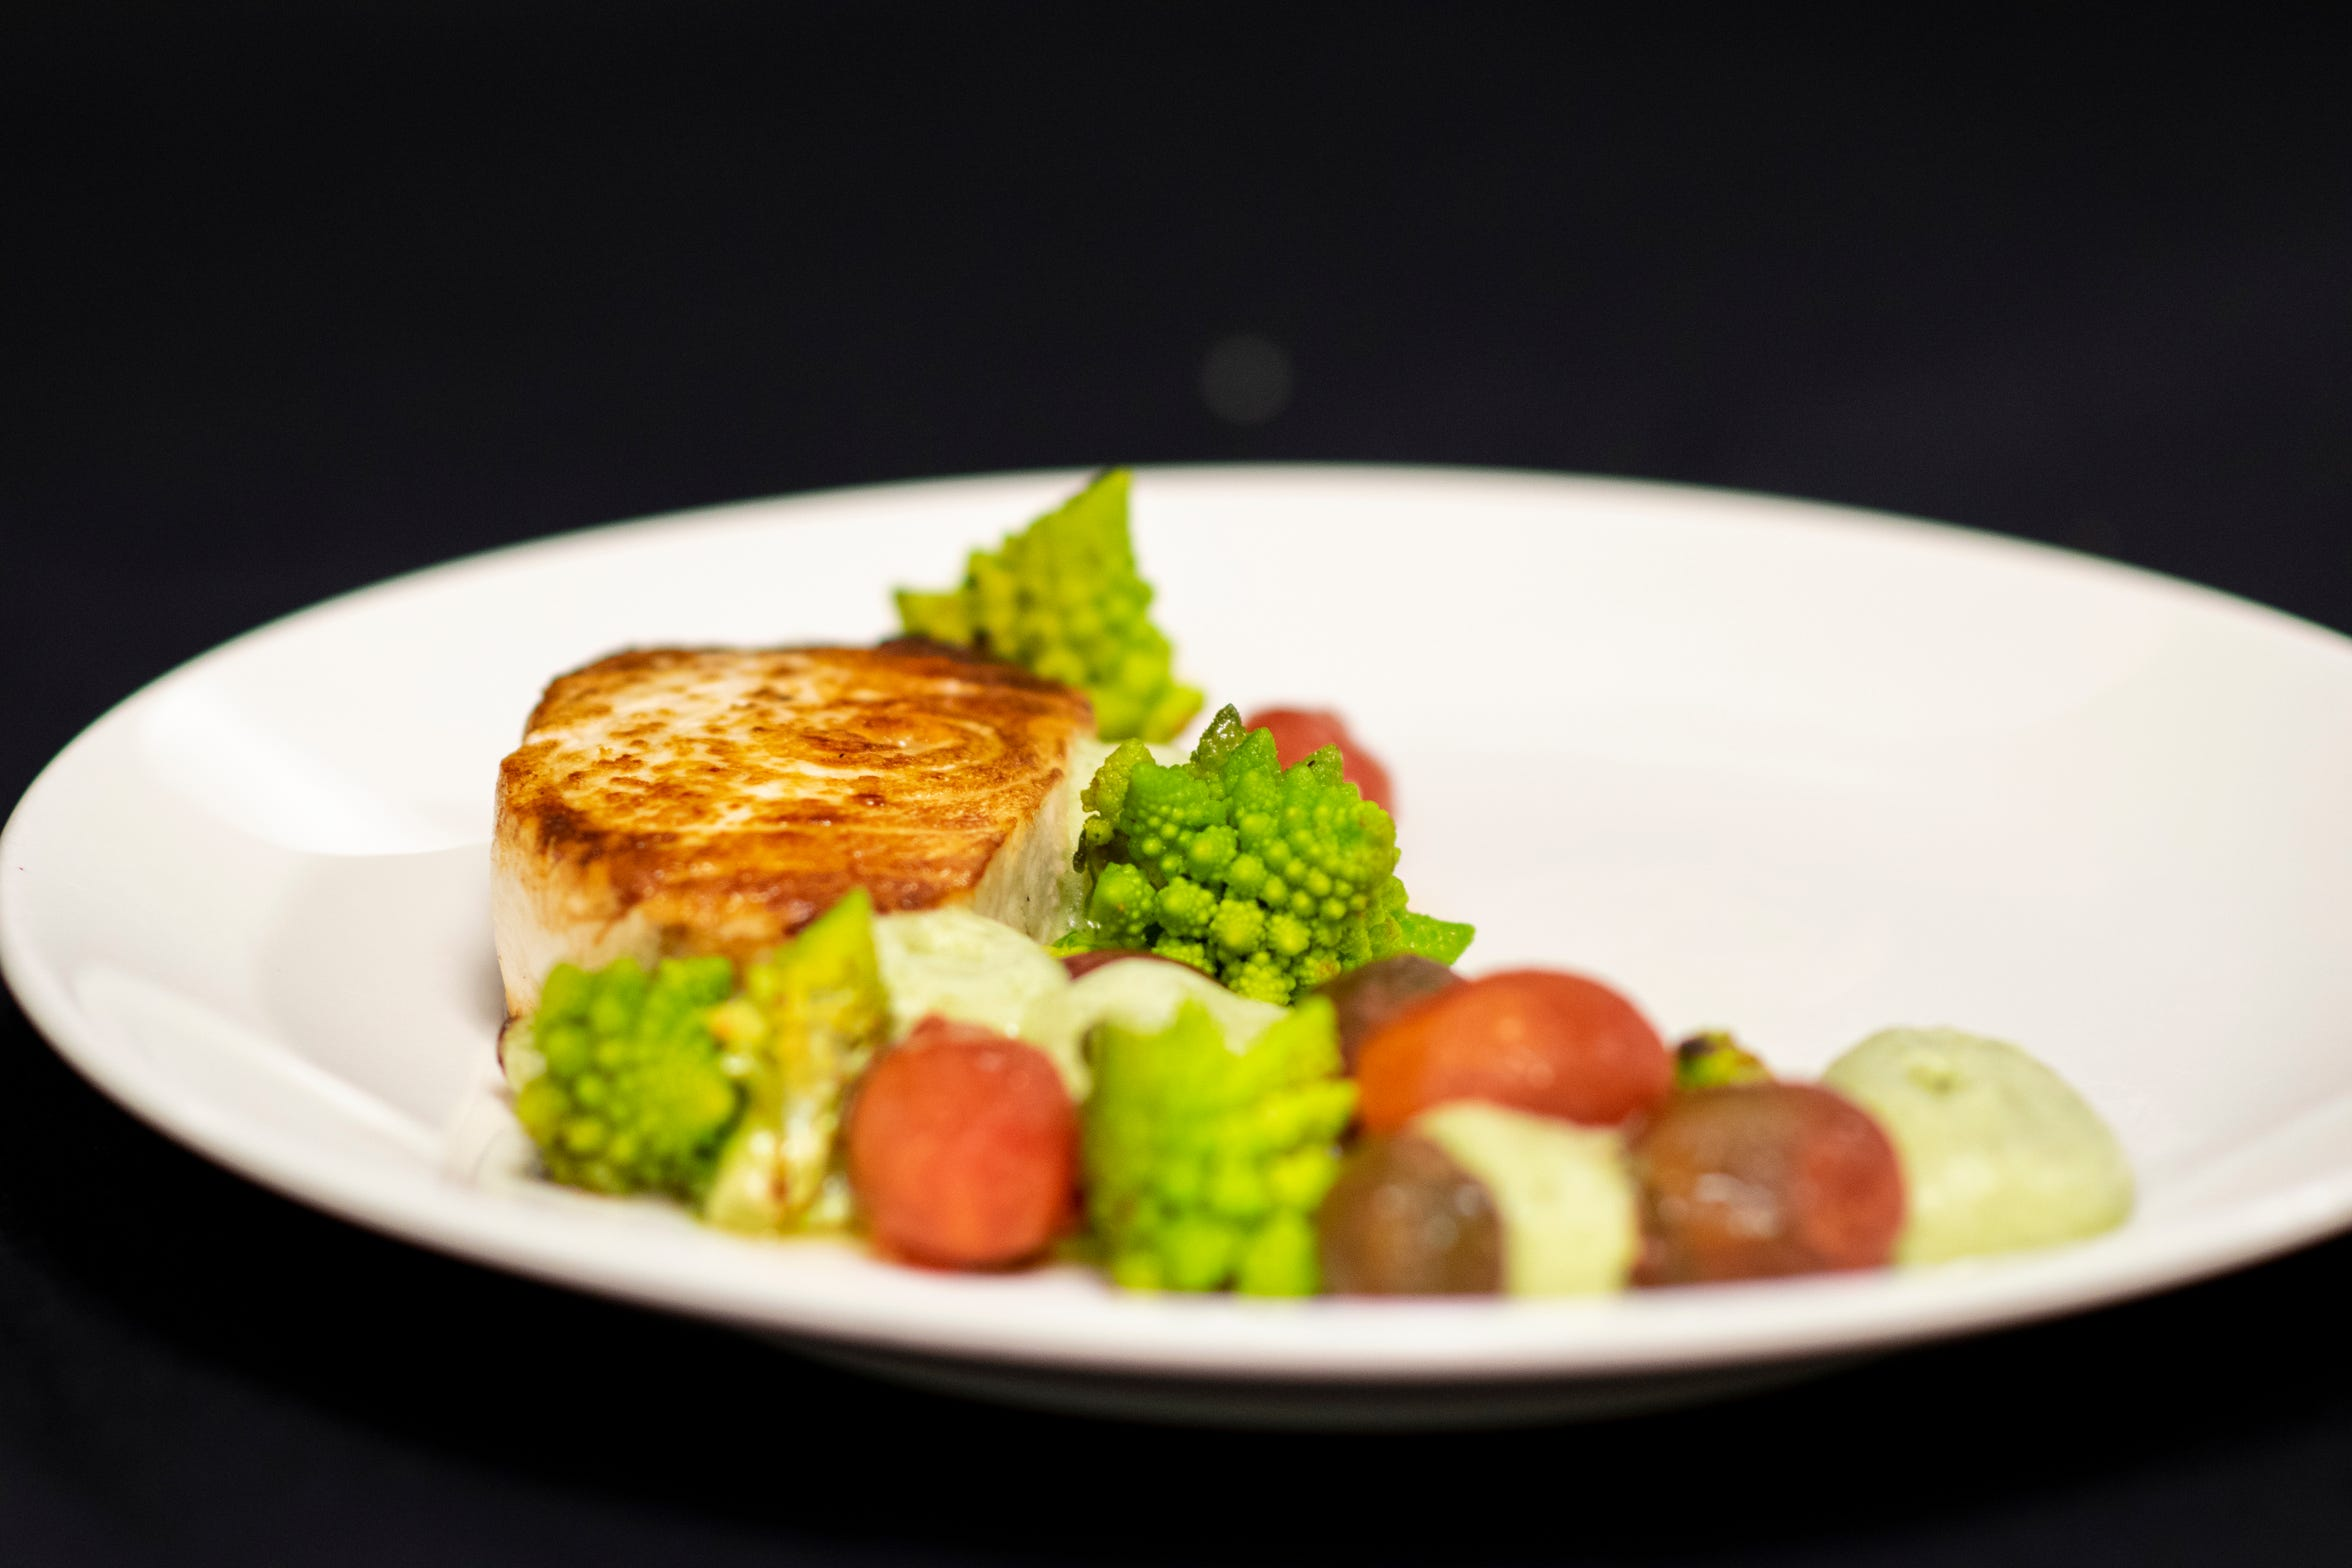 Pacific swordfish with fractal romesco broccoli is on the menu at the newly renovated Montagna in the Resort at Squaw Creek, Squaw Valley, Calif., on the North Shore of Lake Tahoe.